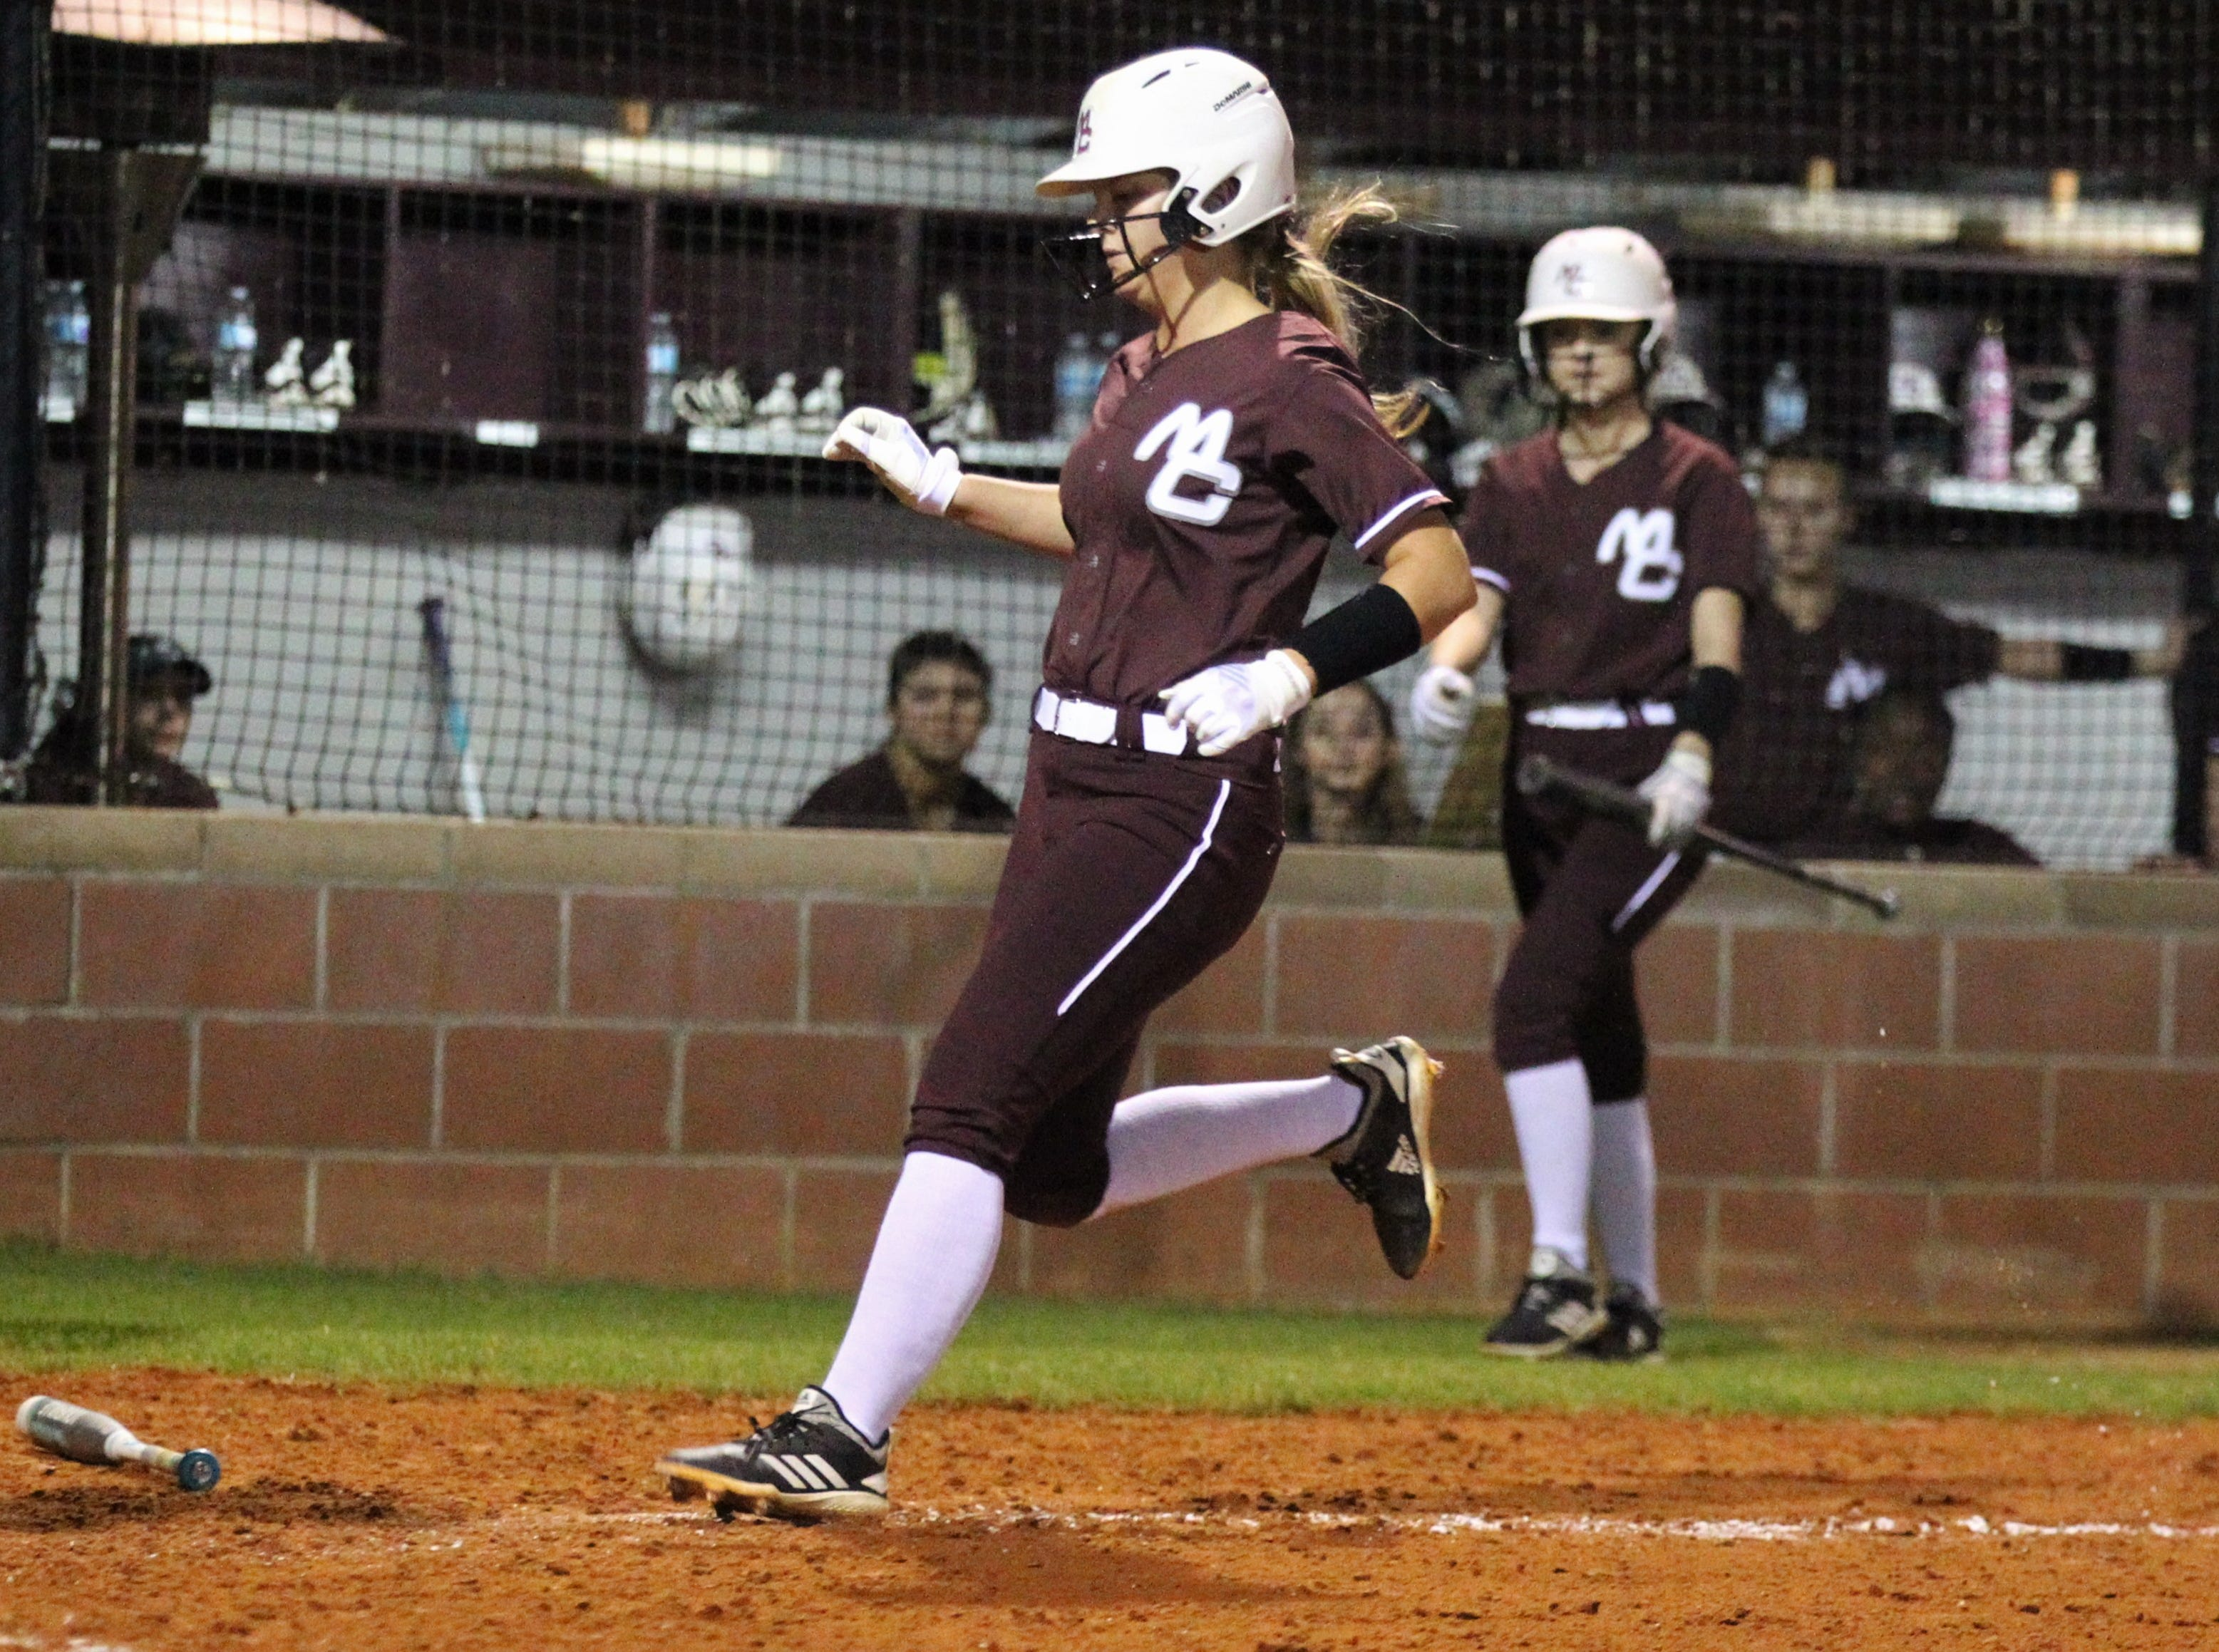 Madison County's Abi Annett scores a run as the Cowgirls' softball team beat Suwannee 17-0 on Feb. 28, 2019.